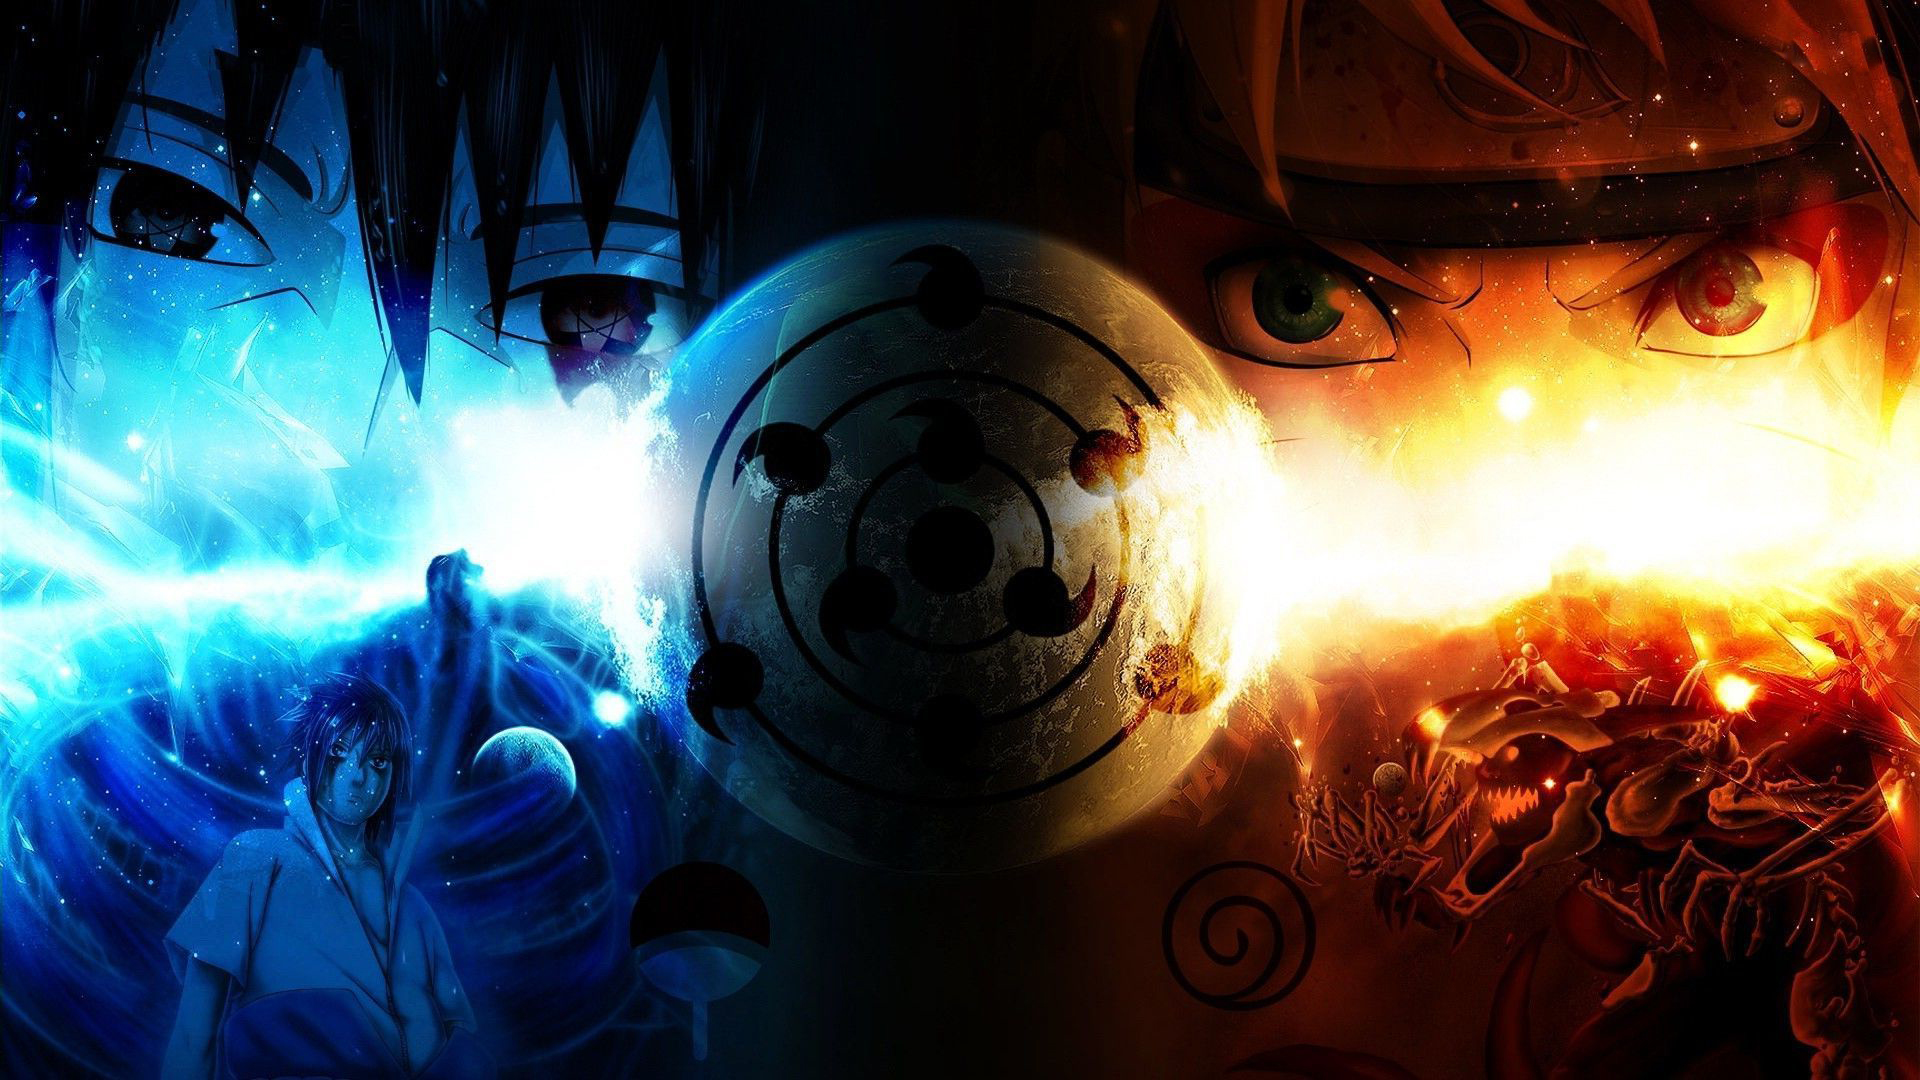 Naruto Landscape Wallpaper Posted By Michelle Peltier